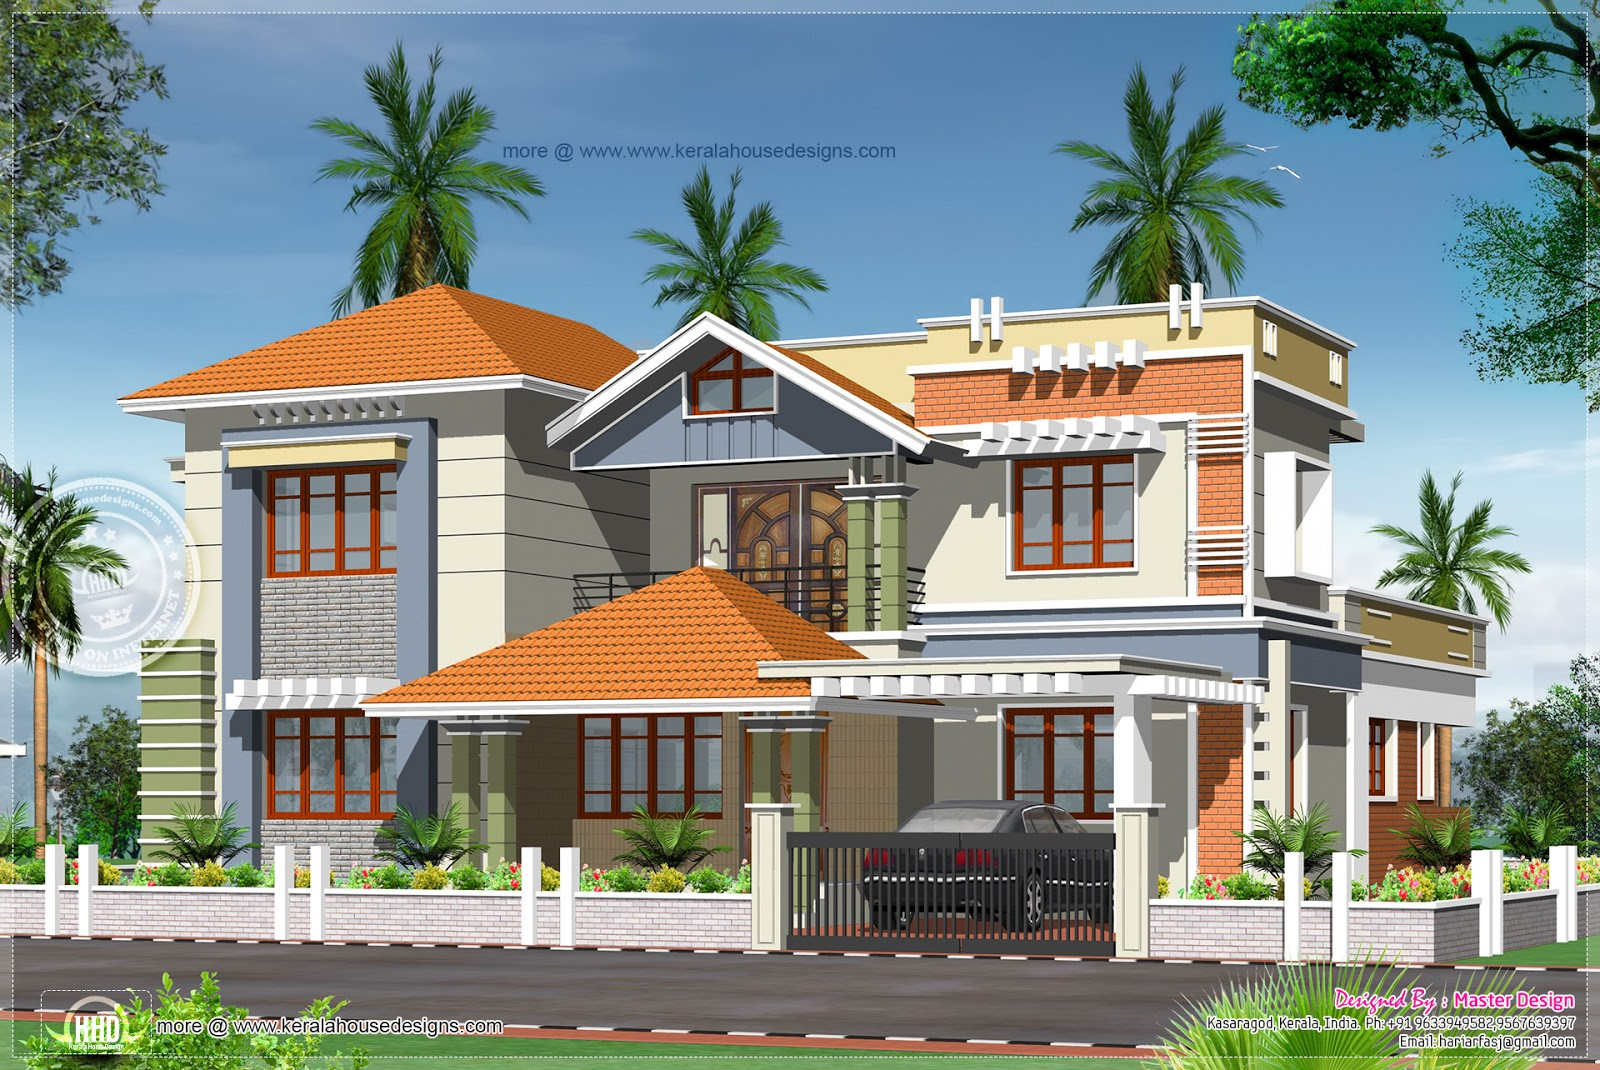 Luxury house design in 3132 square feet - Kerala home design and floor ...